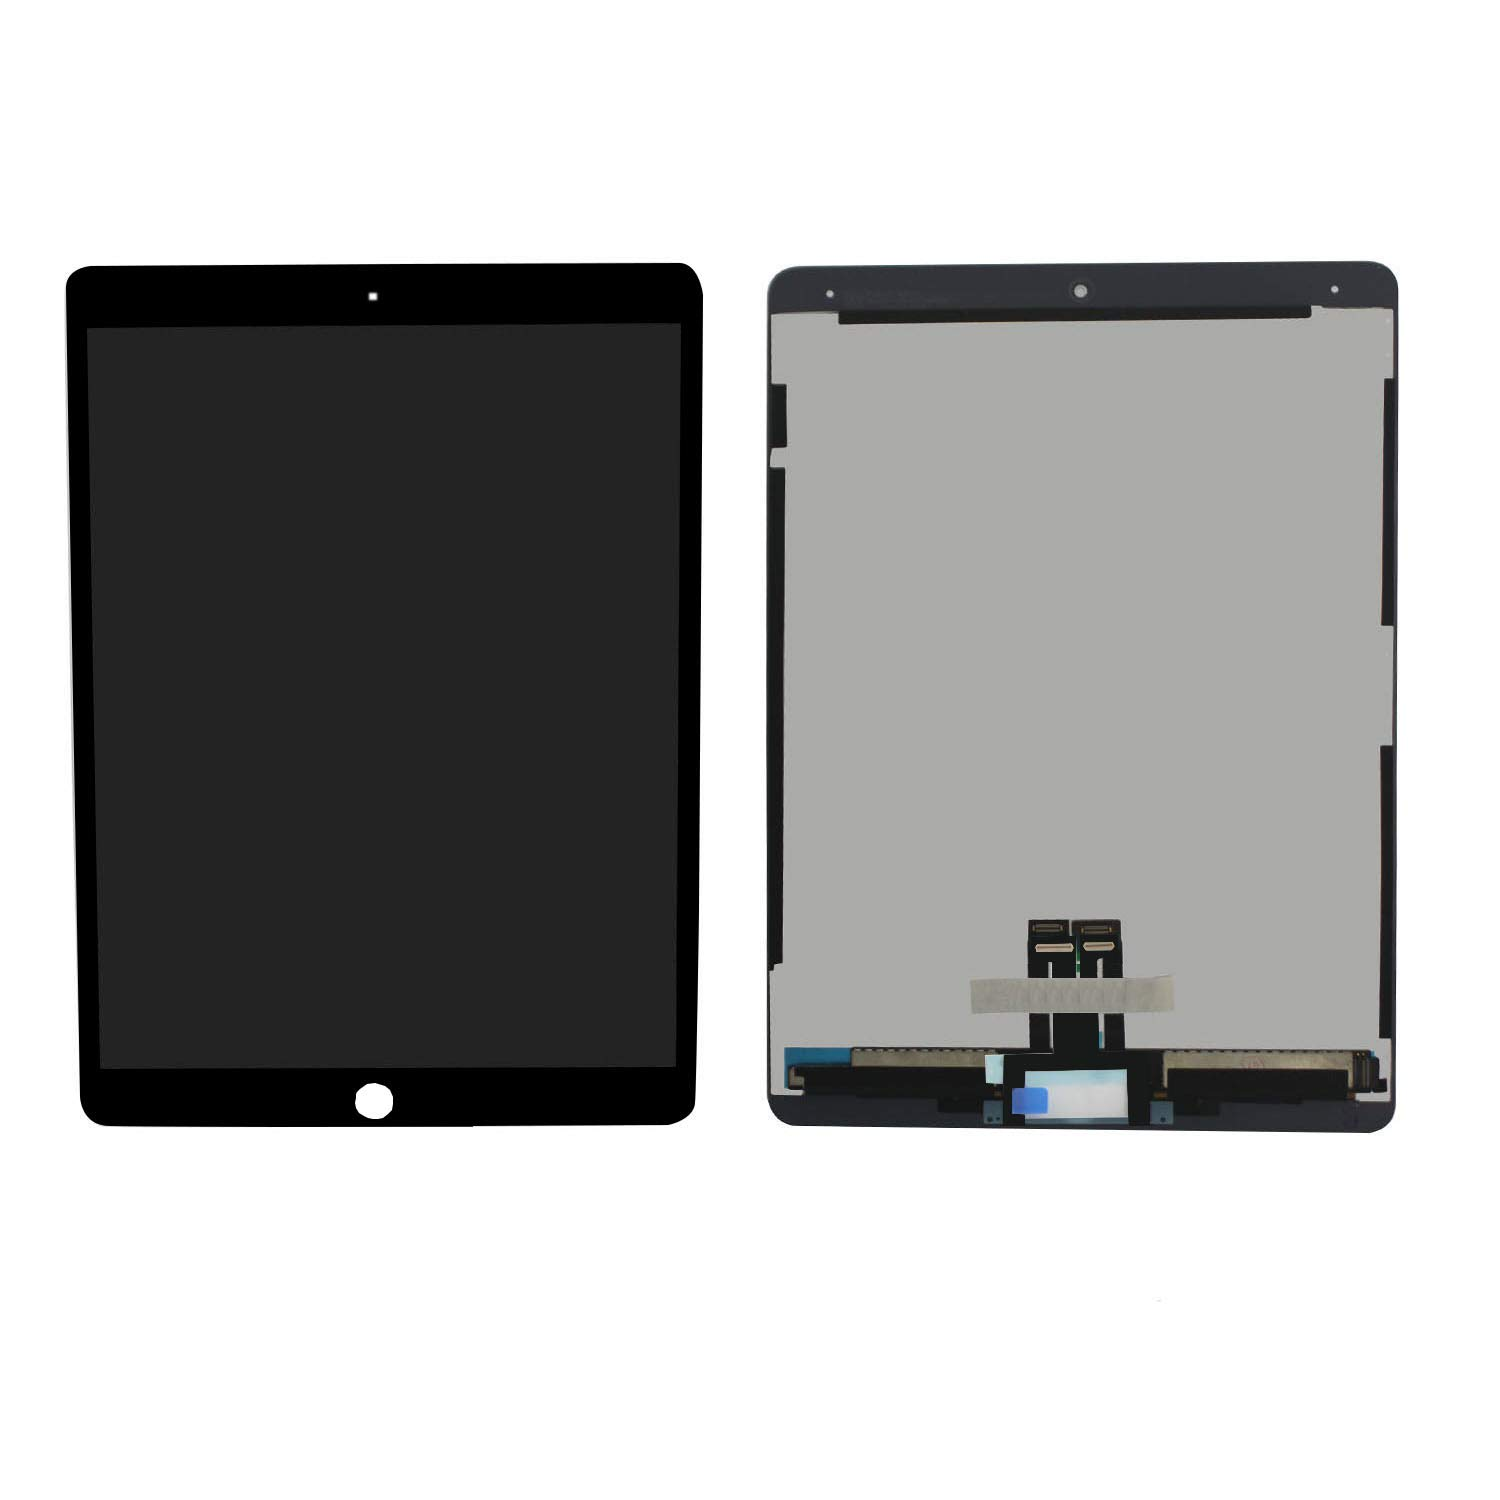 Compatible with IPad Pro 10.5 Inch LCD Dispaly Touch Screen Digitizer Assembly for Model A1701,1709 + Free Tool Kits (Black)